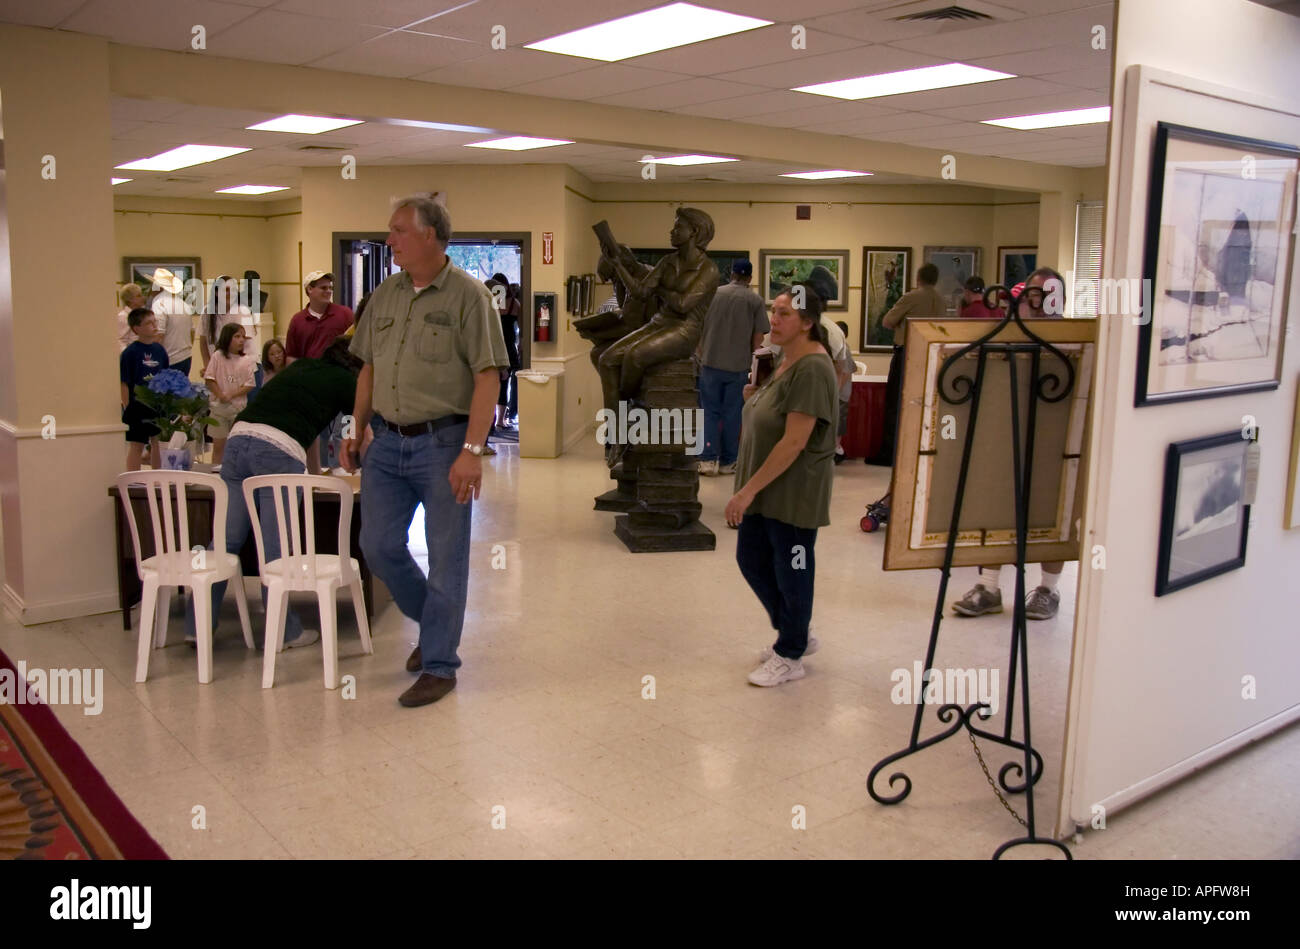 People milling about & appreciating the many works of art on display at this Art Exhibit at the Utah State Fair - Stock Image